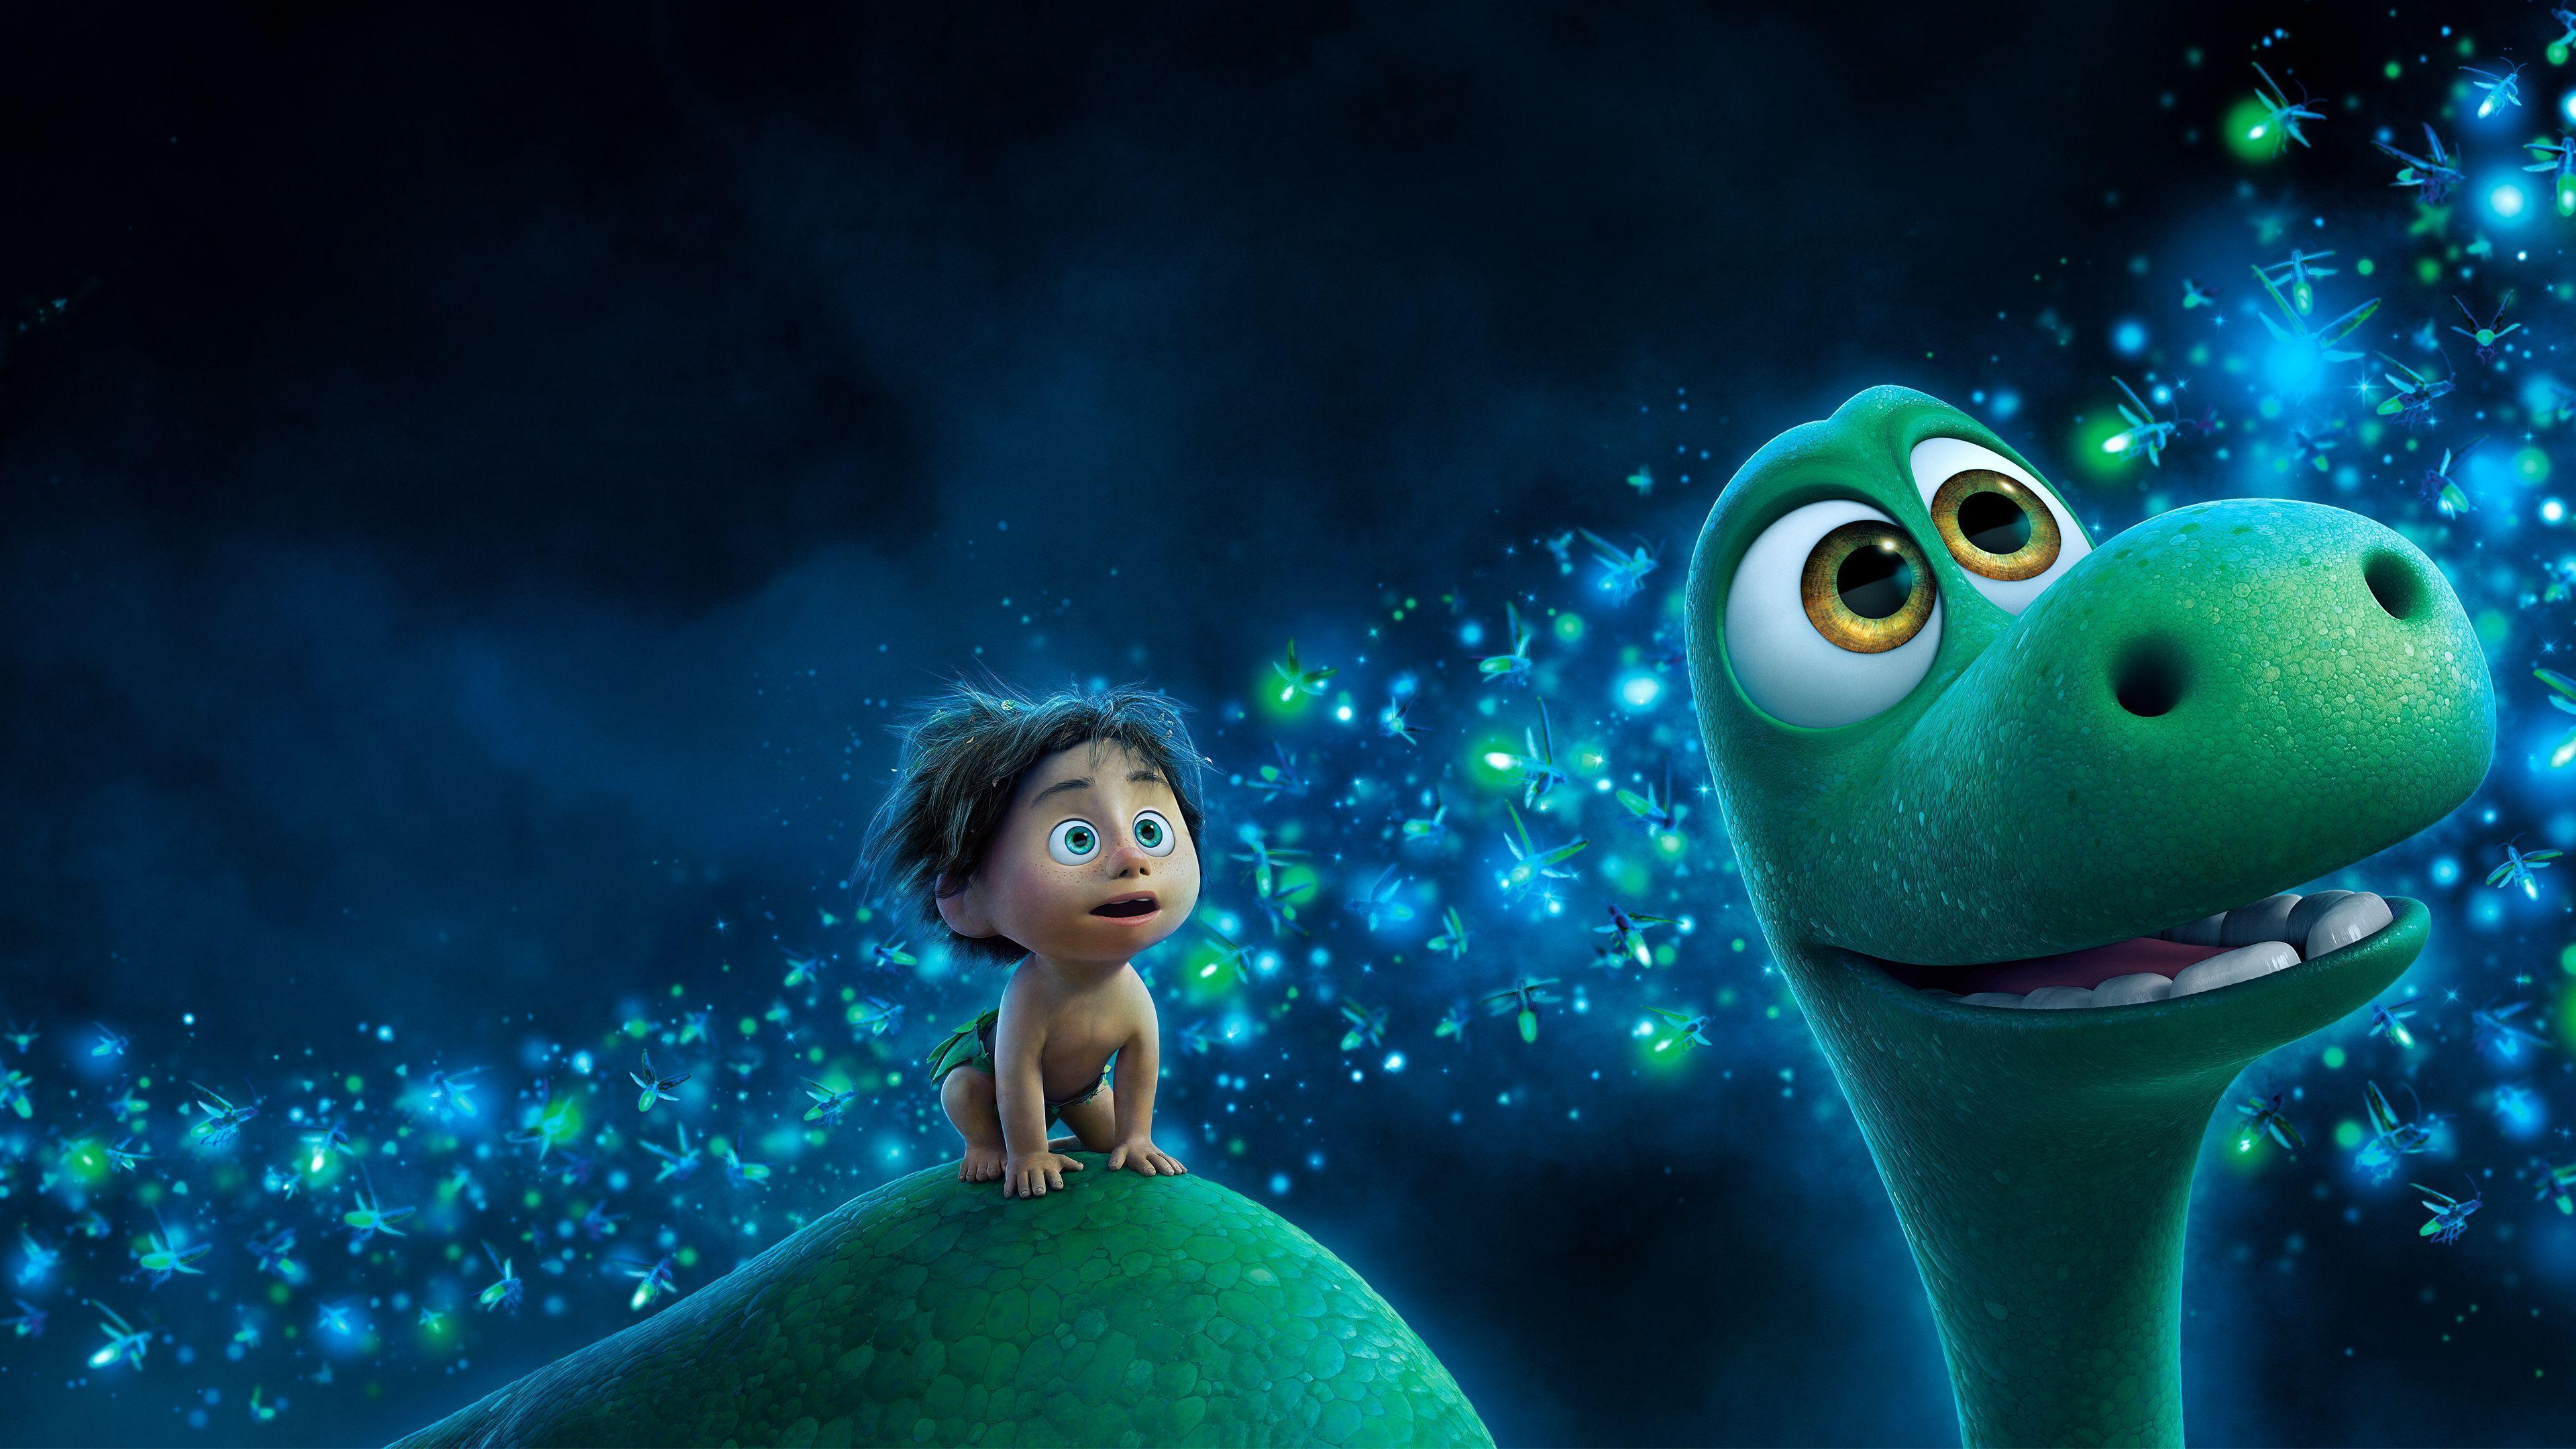 Arlo Spot The Good Dinosaur Wallpapers